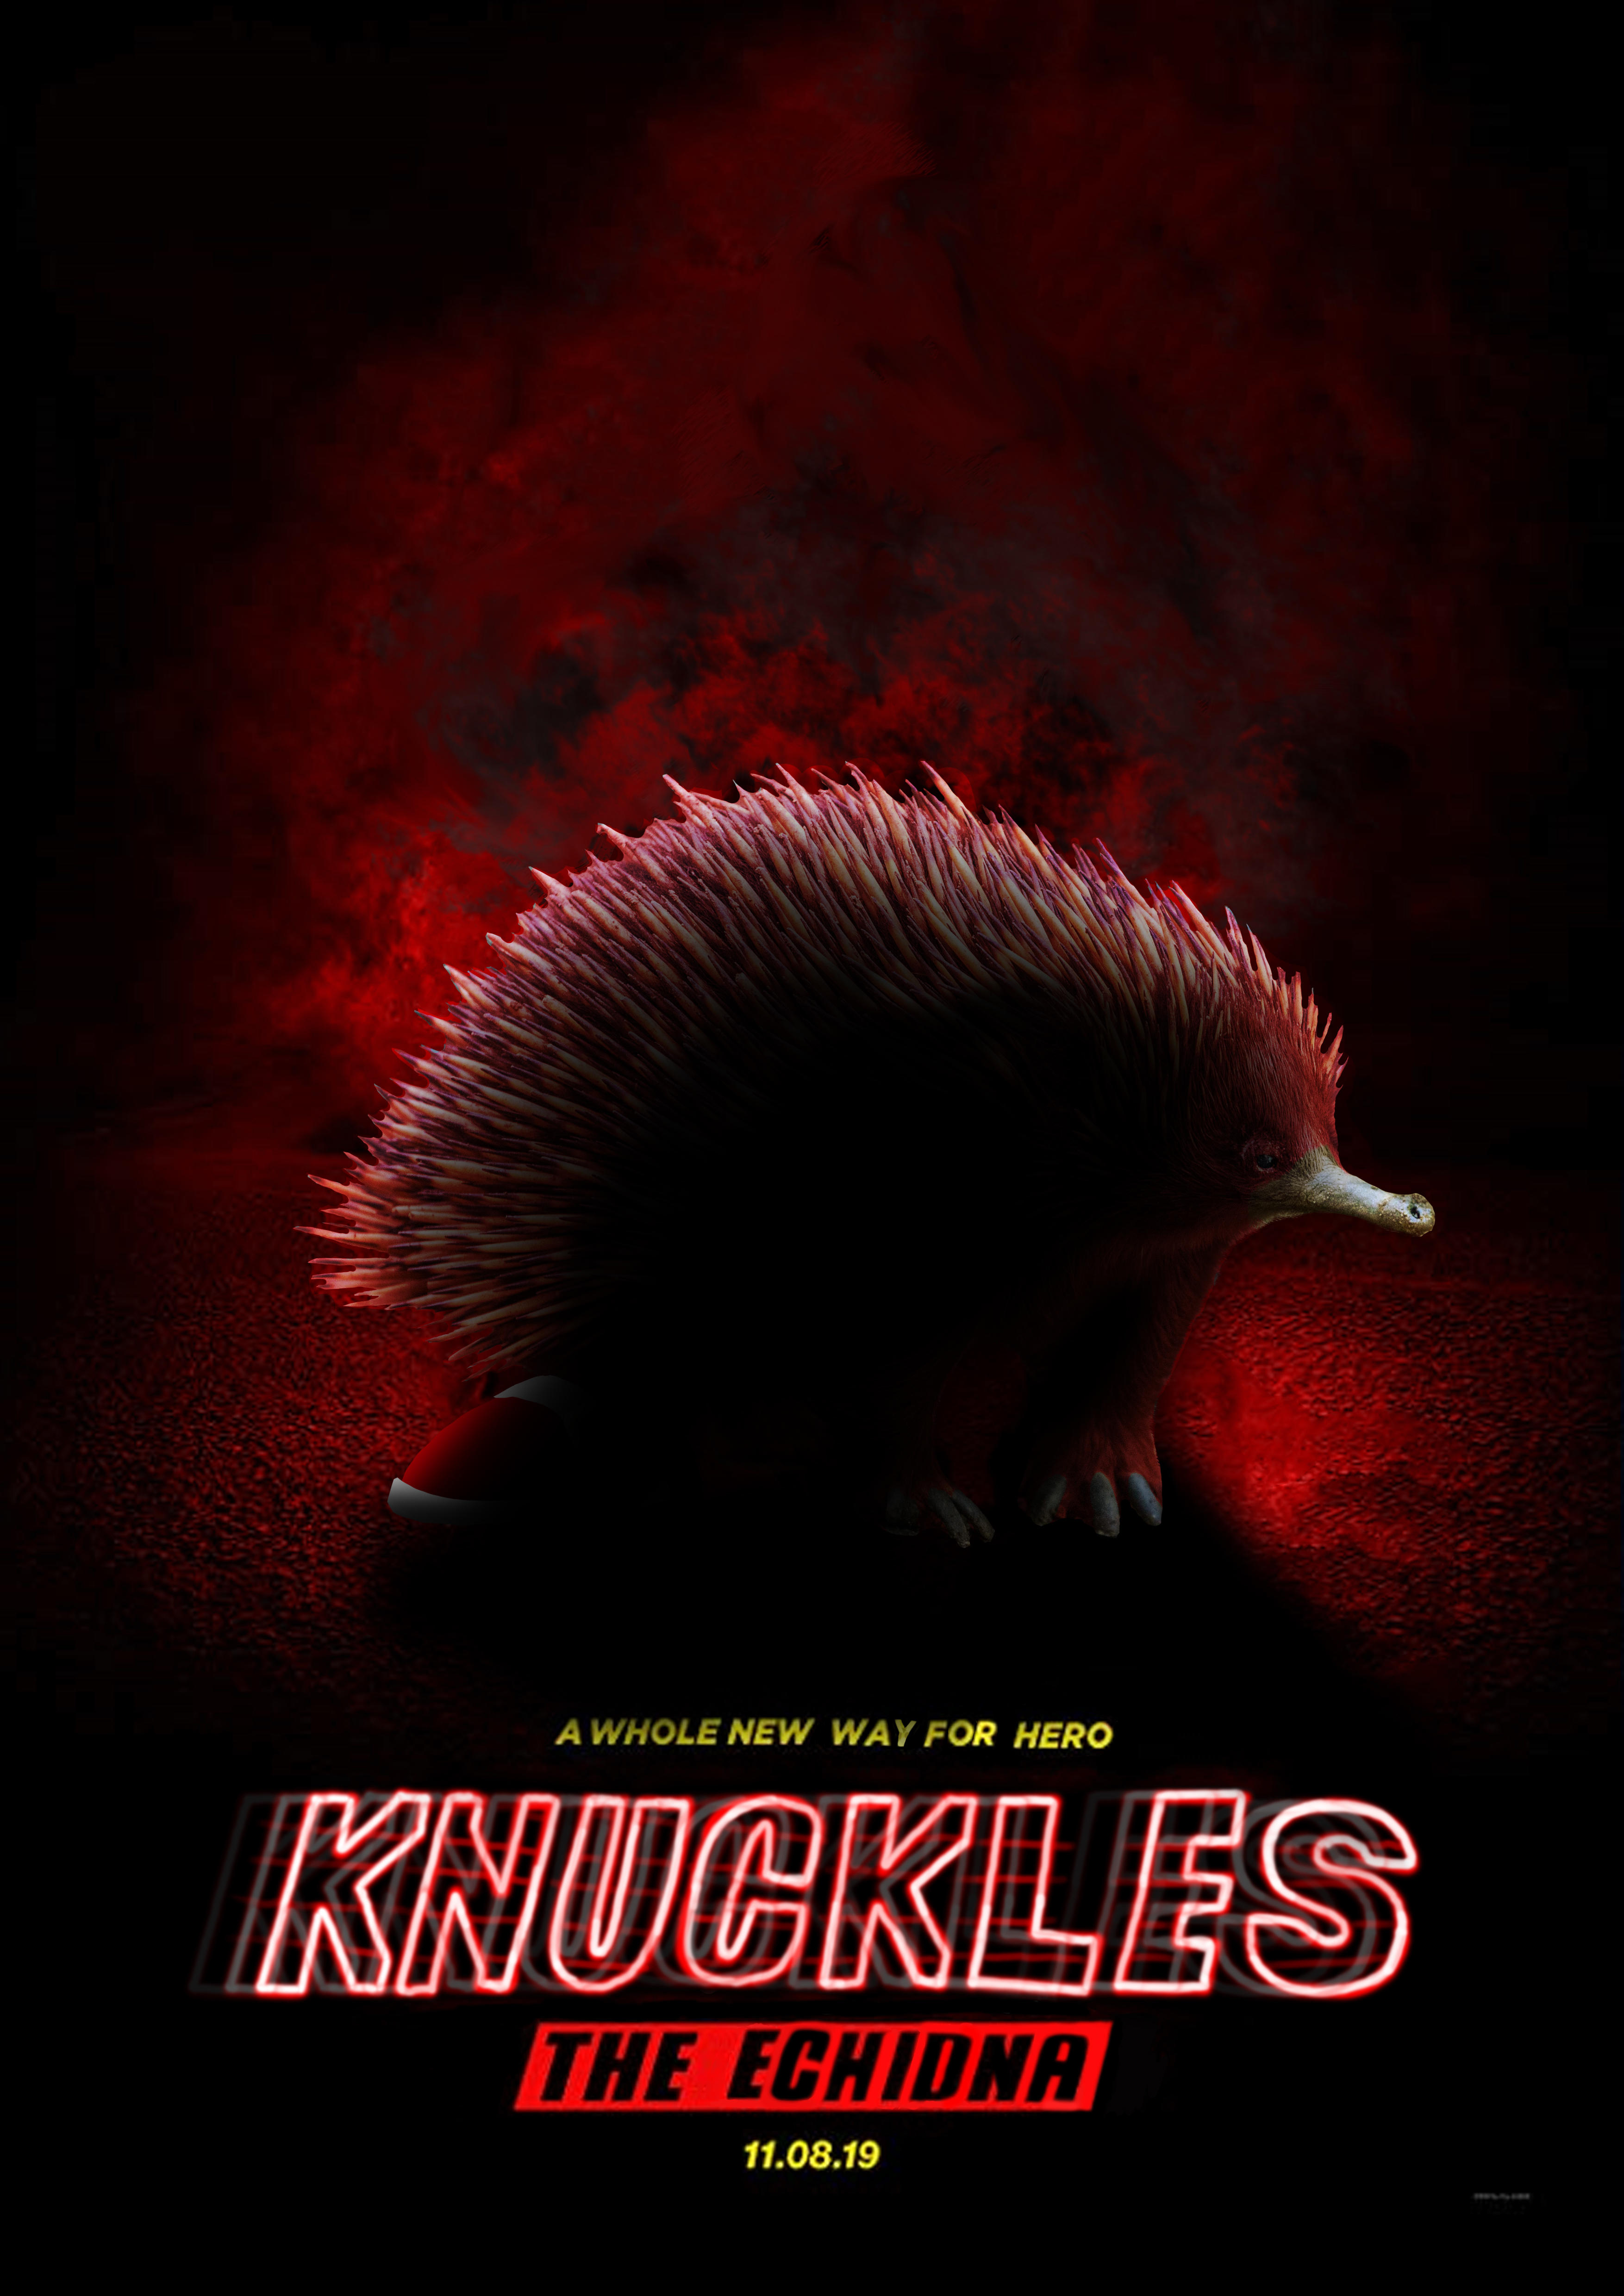 Knuckles The Echidna The Movie Sonic The Hedgehog Movie Poster Parodies Know Your Meme